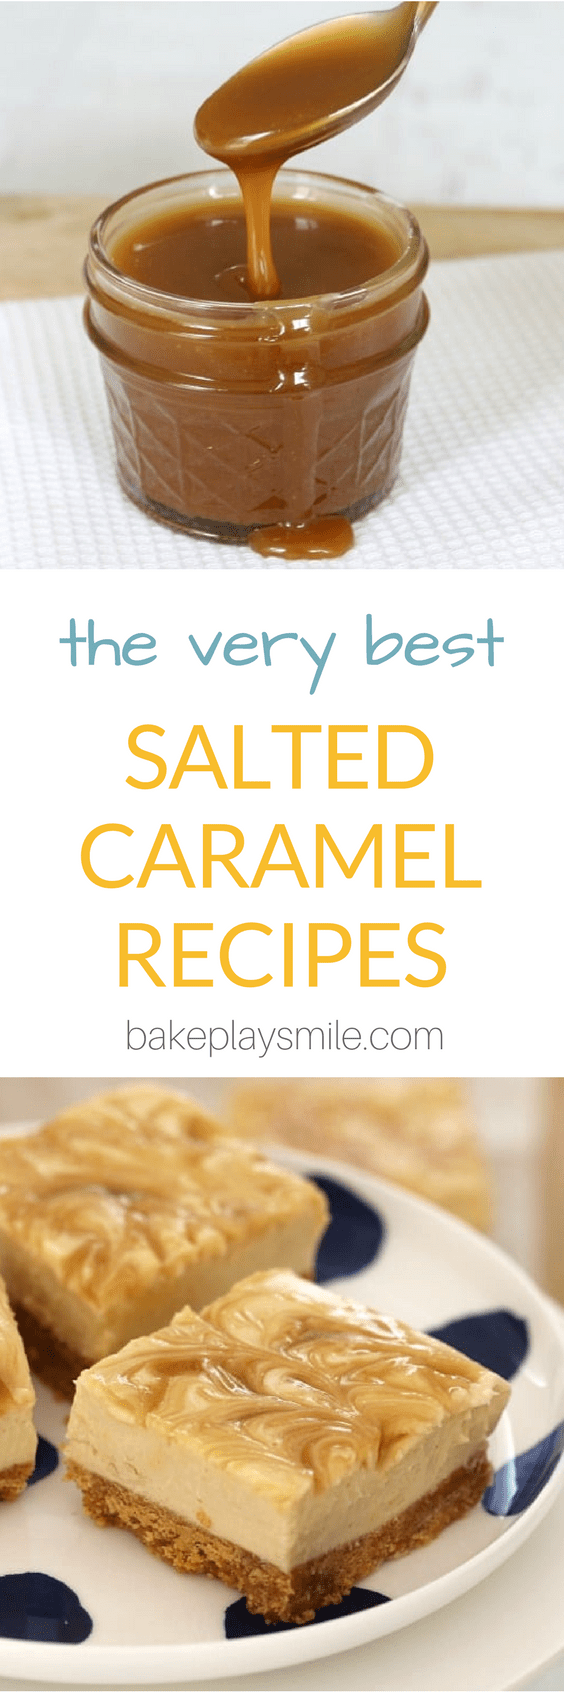 The ultimate collection of the VERY BEST SALTED CARAMEL RECIPES!! With everything from cheesecake to mud cake, brownies to slices, homemade sauce and frosting... YUM!